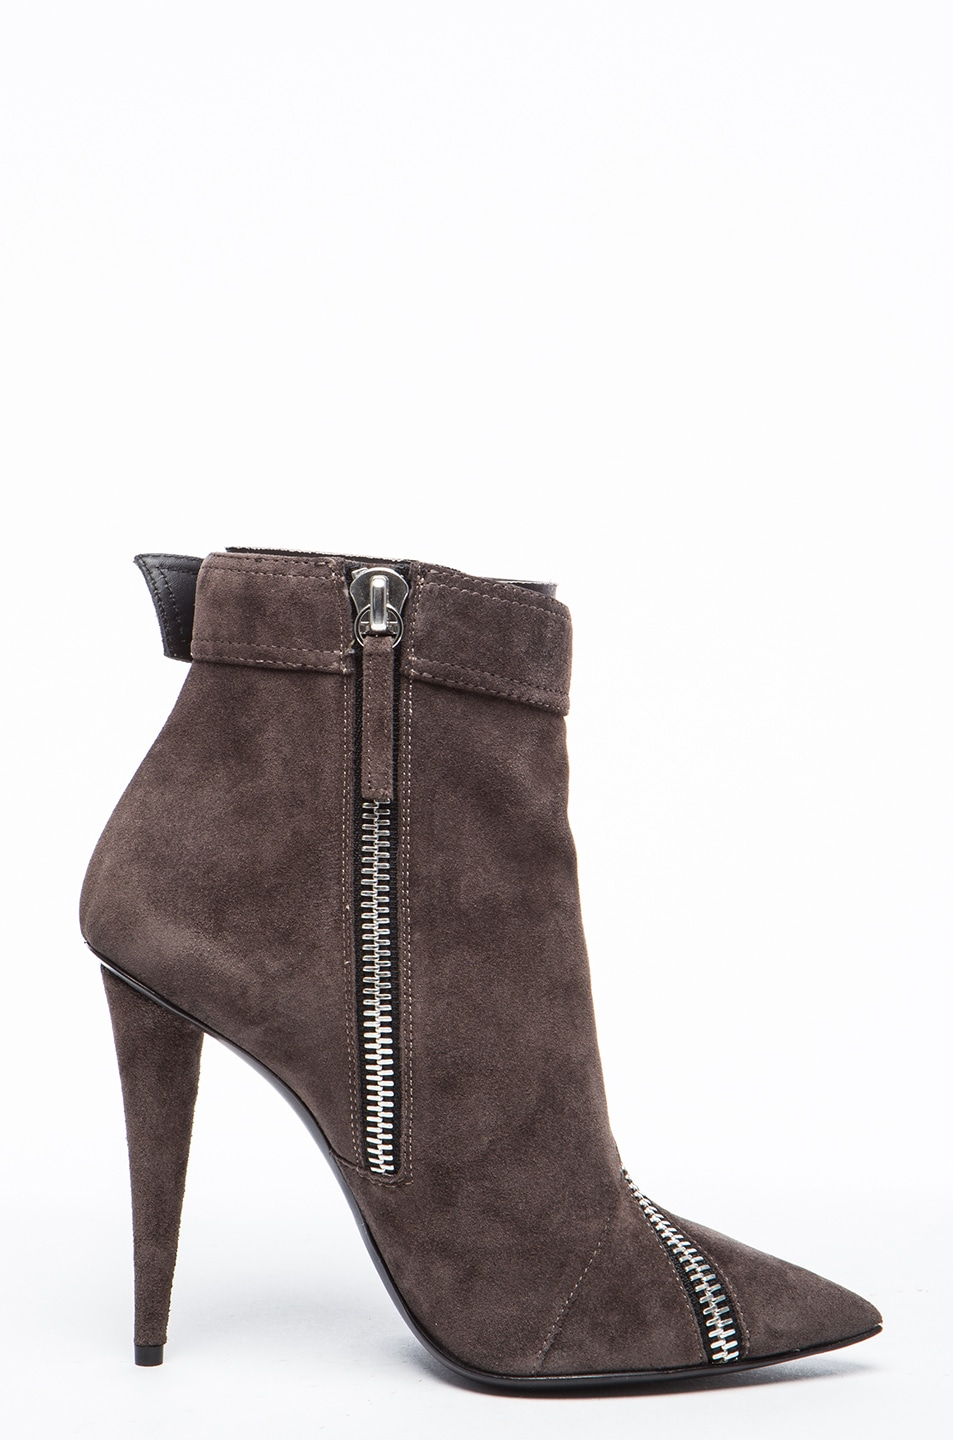 Image 5 of Giuseppe Zanotti Suede Booties in Flan